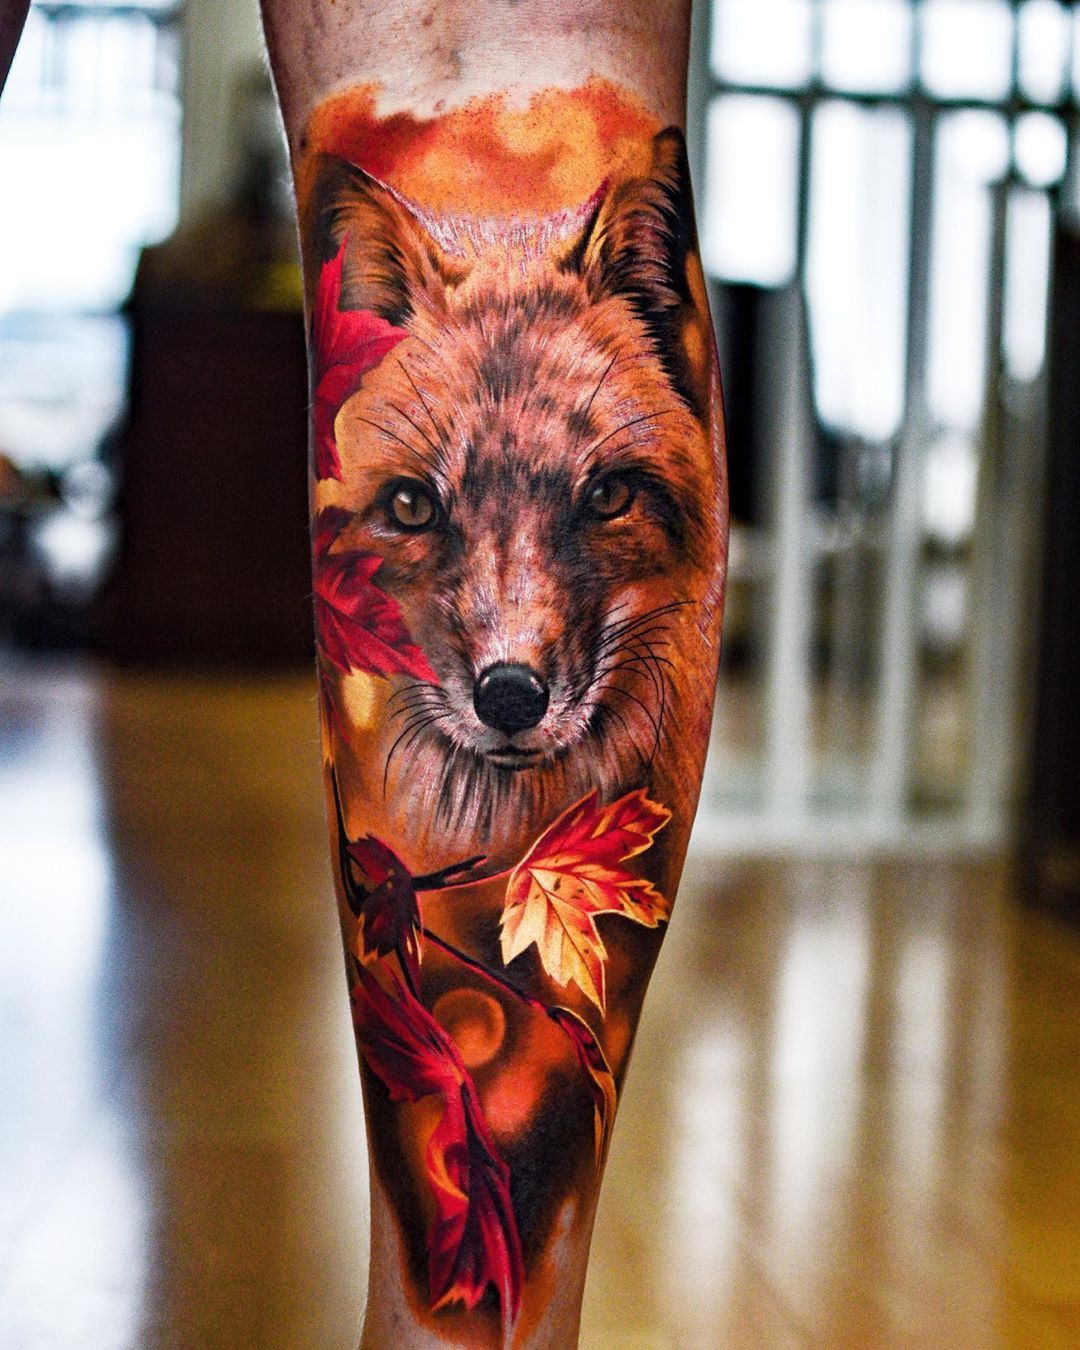 Pin By Brandon Keith On Skin Giants Tattoos Fox Tattoo Animal Tattoos Fox Tattoo Design